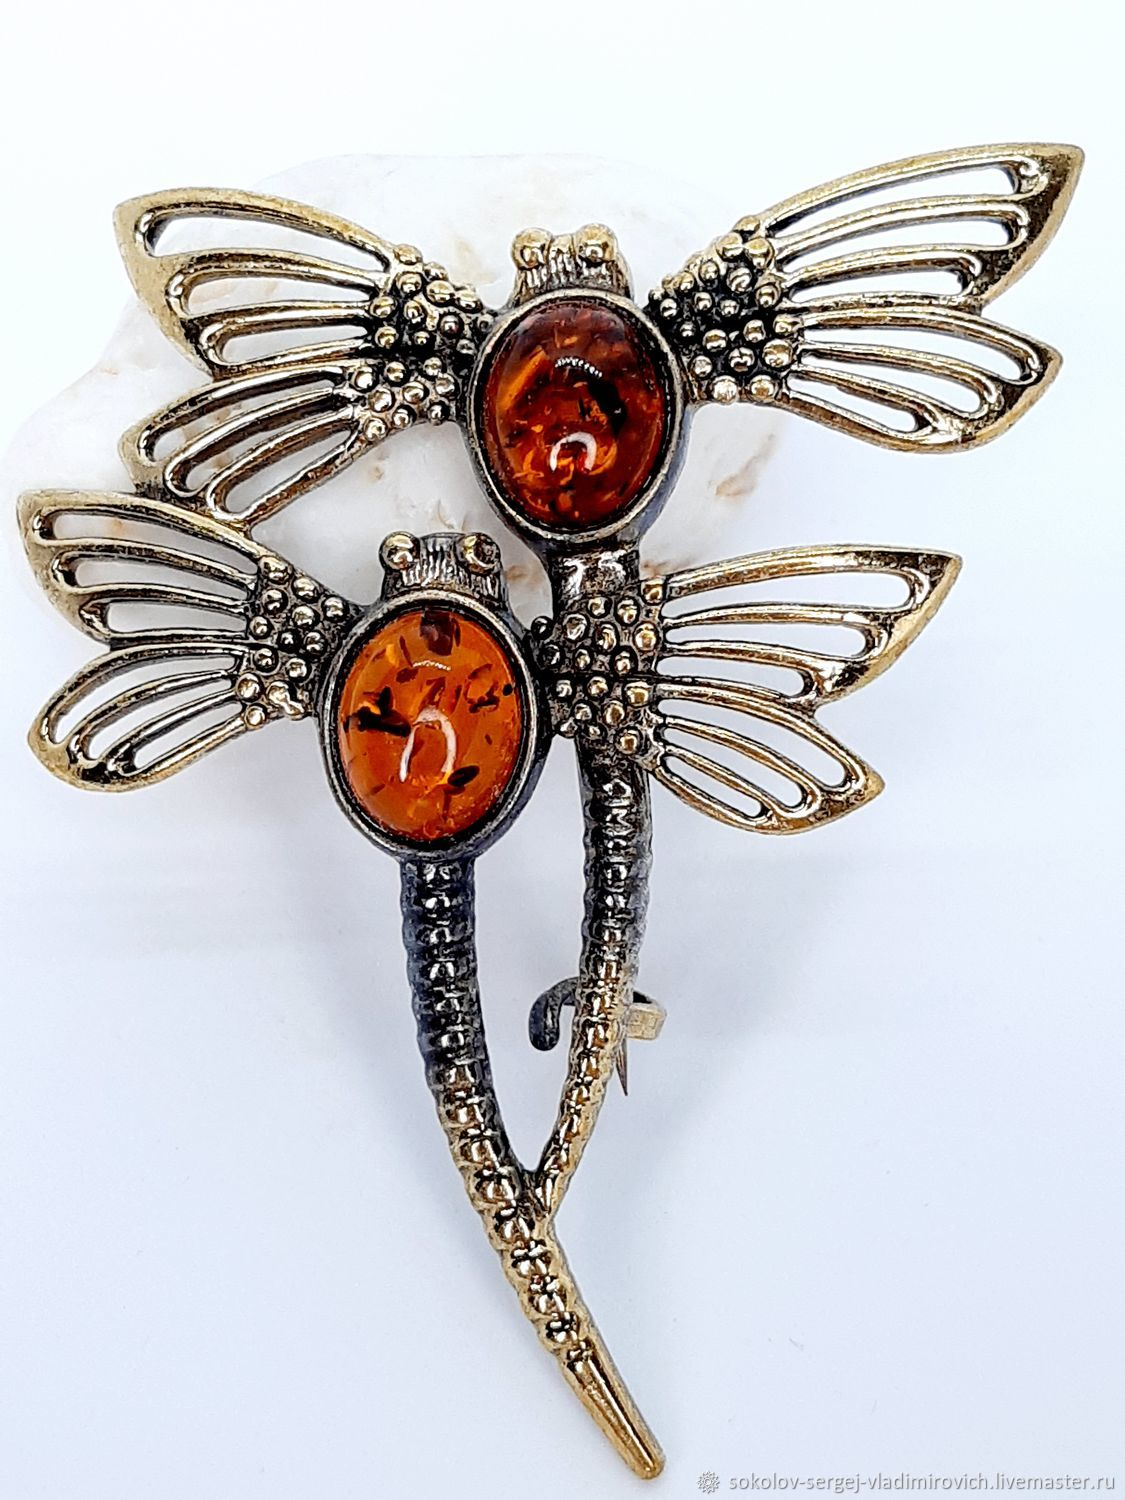 Steam Dragonfly brooch, Brooches, Moscow,  Фото №1